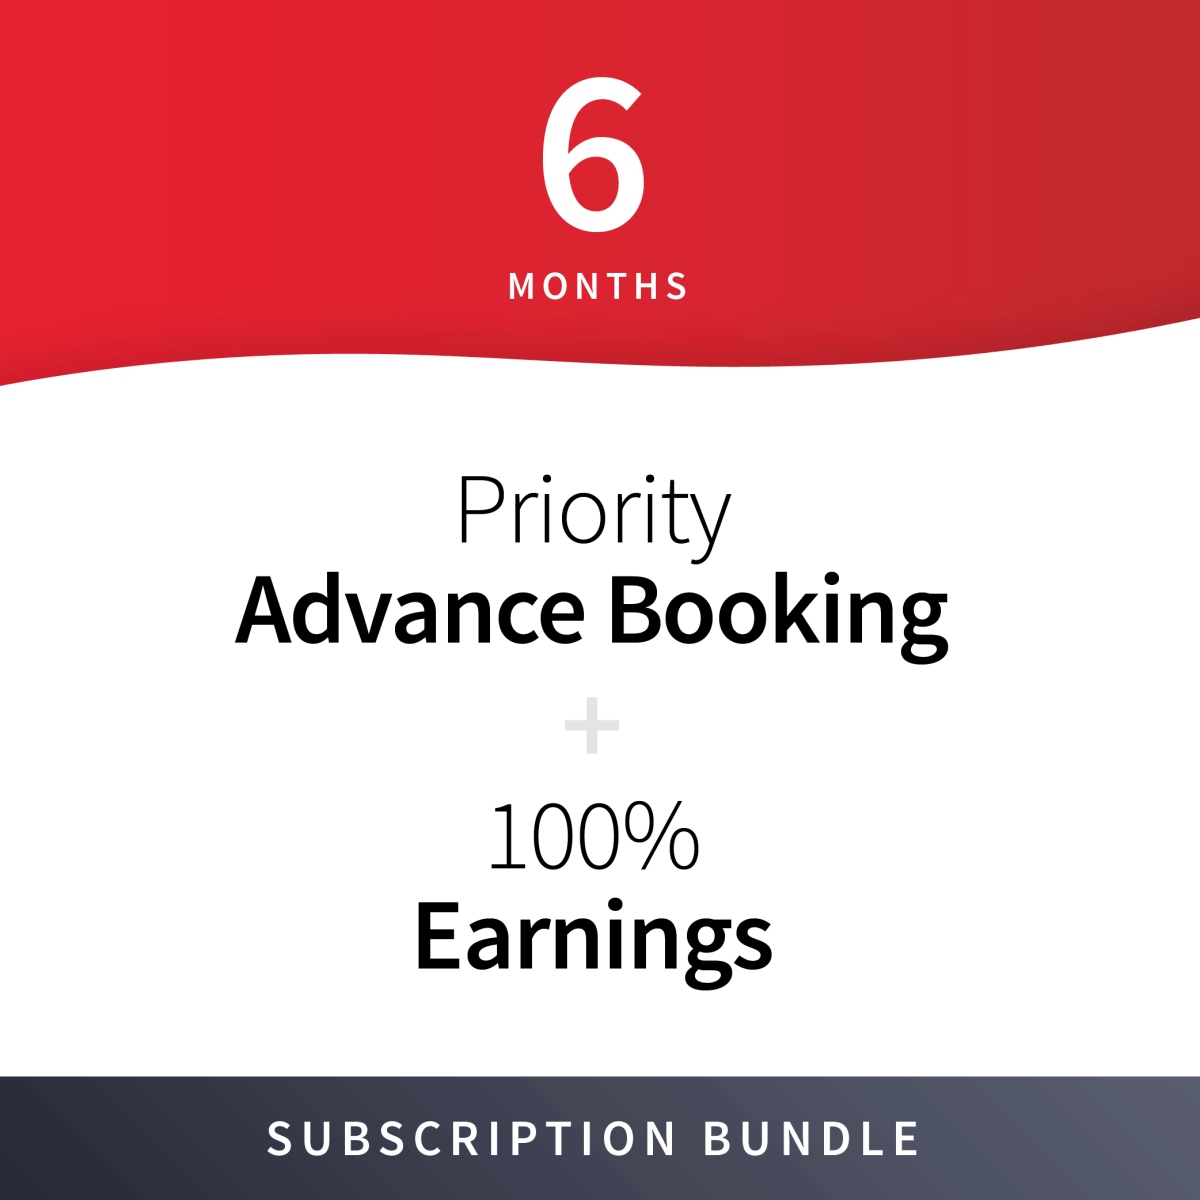 100% Earnings + Priority Advance Booking Subscription Bundle - 6 Months 3